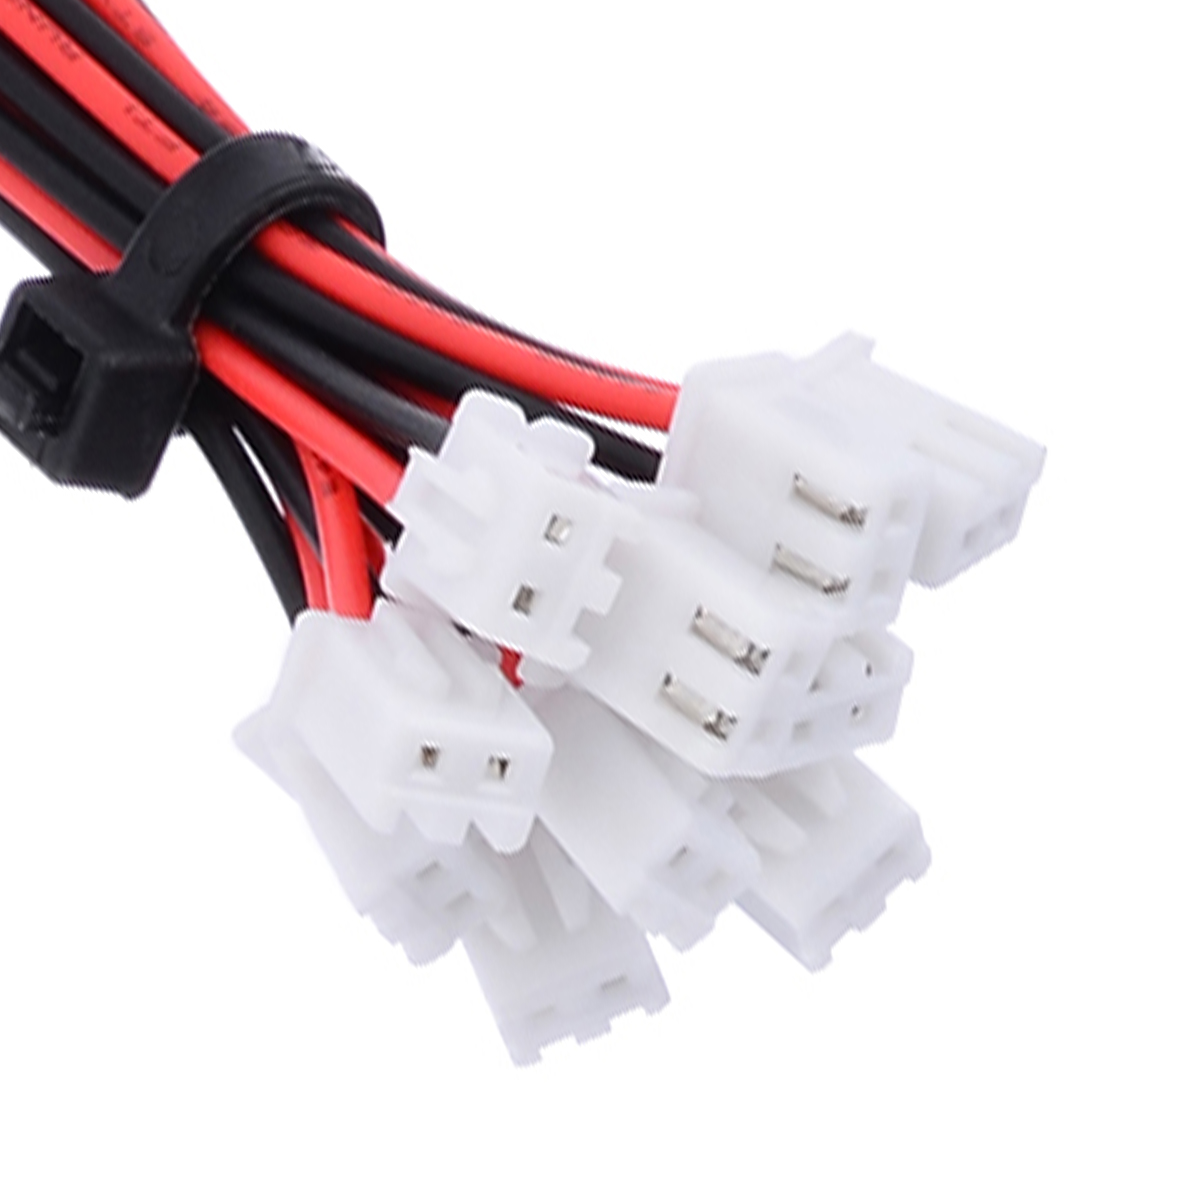 5PCS 2Pin Mini Micro JST XH2.54mm 24AWG Connector Plug With Cable